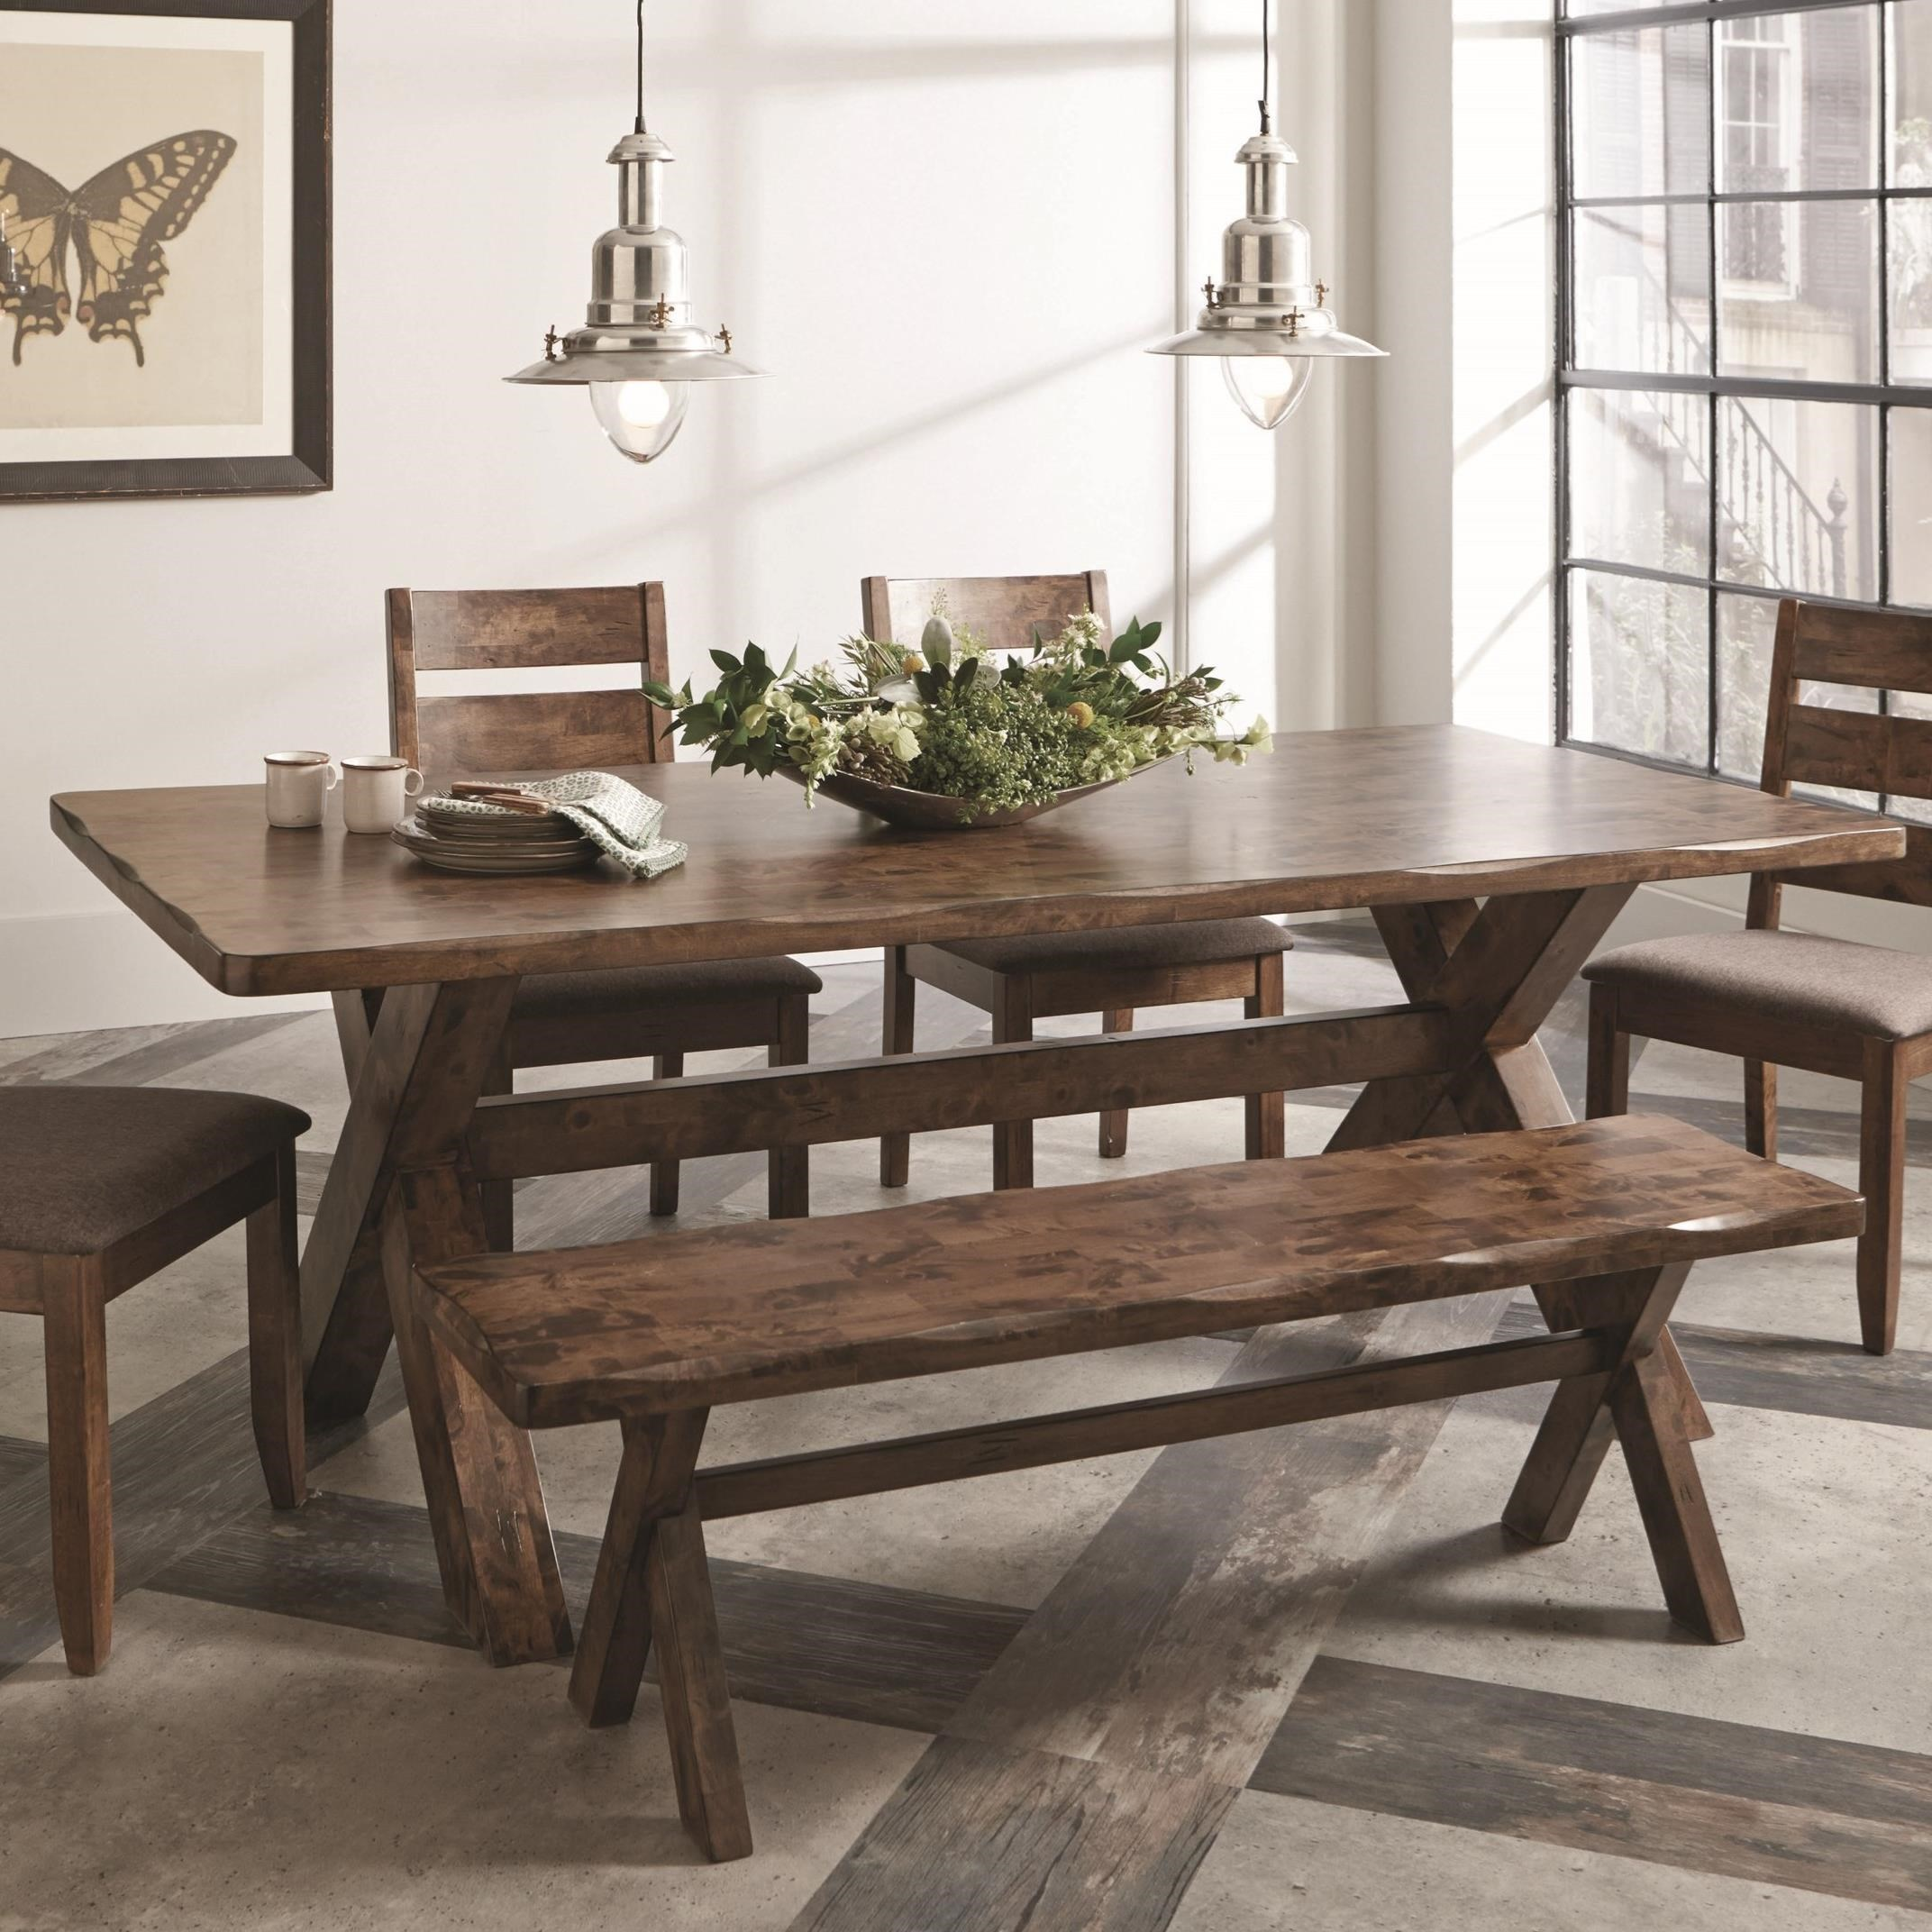 Dining Room Furniture Dallas Tx: Coaster Alston Knotty Nutmeg Dining Table With Wavy Edge